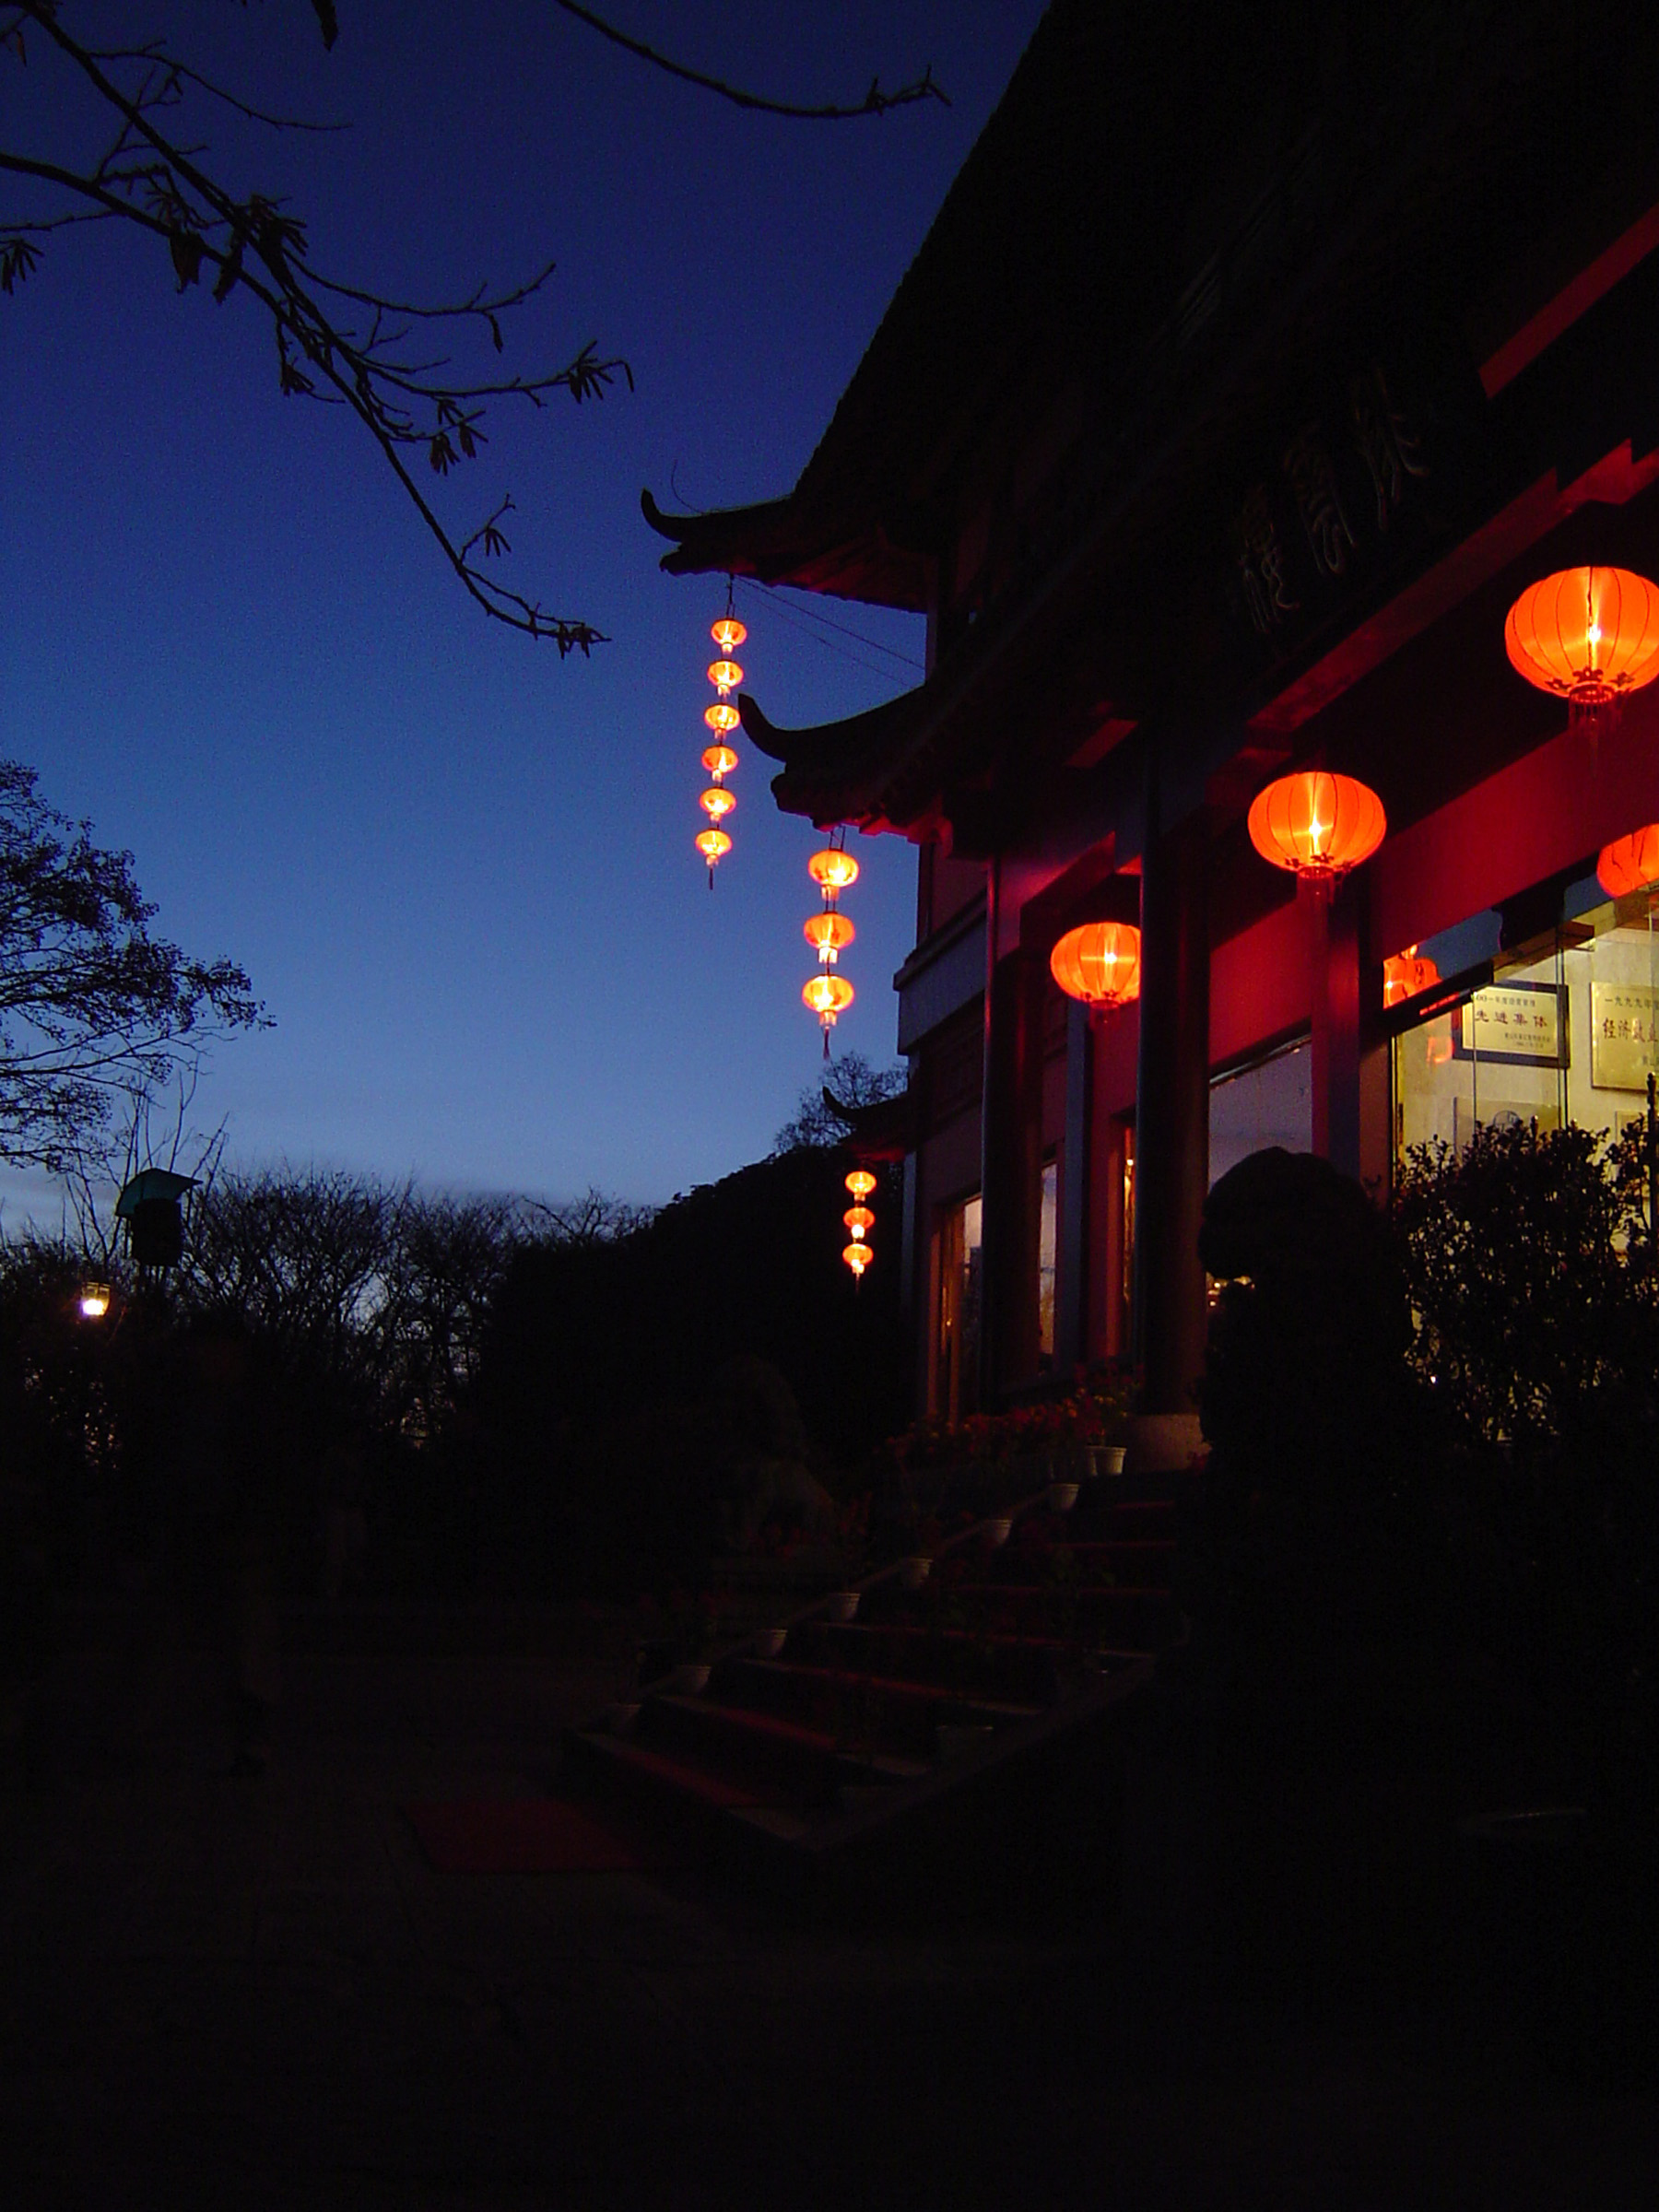 Night scene of a traditional Chinese house with colorful lighted lanterns hung at the entrance as a welcome to visitors